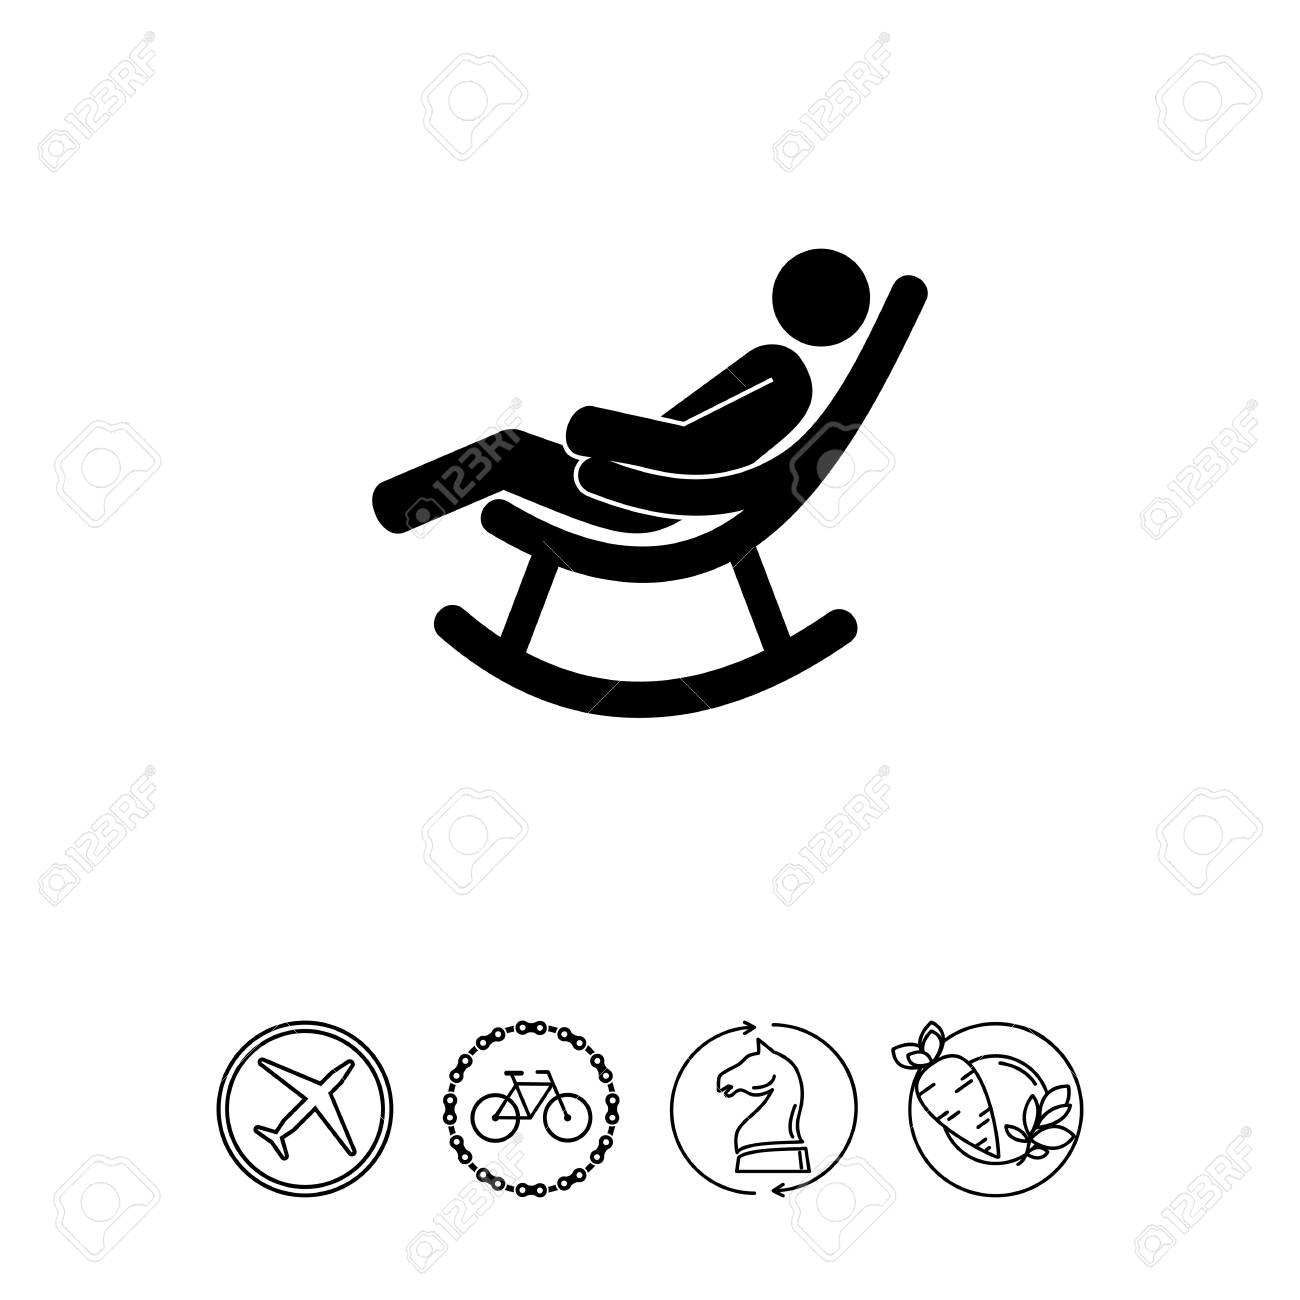 Picture of: Man In Rocking Chair Icon Royalty Free Cliparts Vectors And Stock Illustration Image 78546231